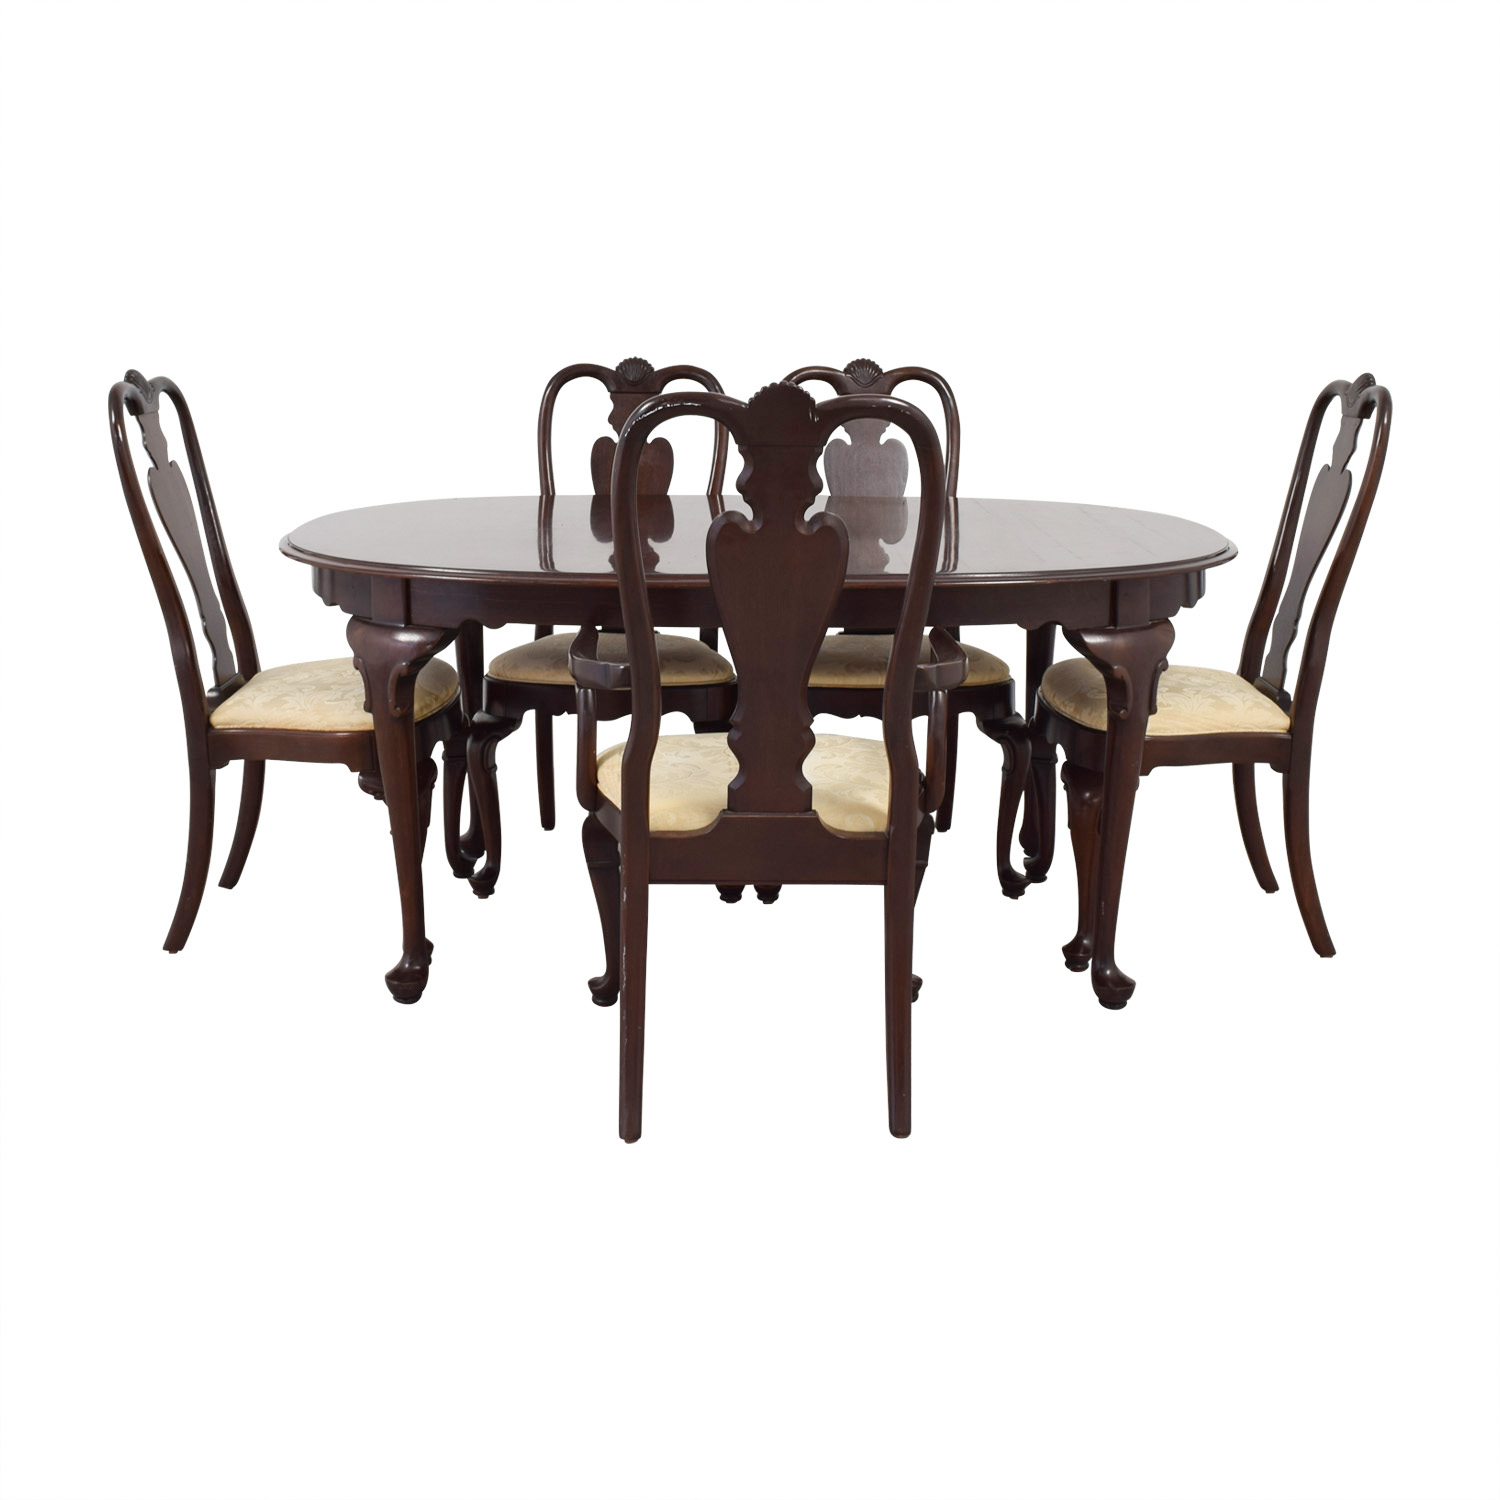 Ethan Allen Ethan Allen Wood Dining Set with Upholstered Chairs